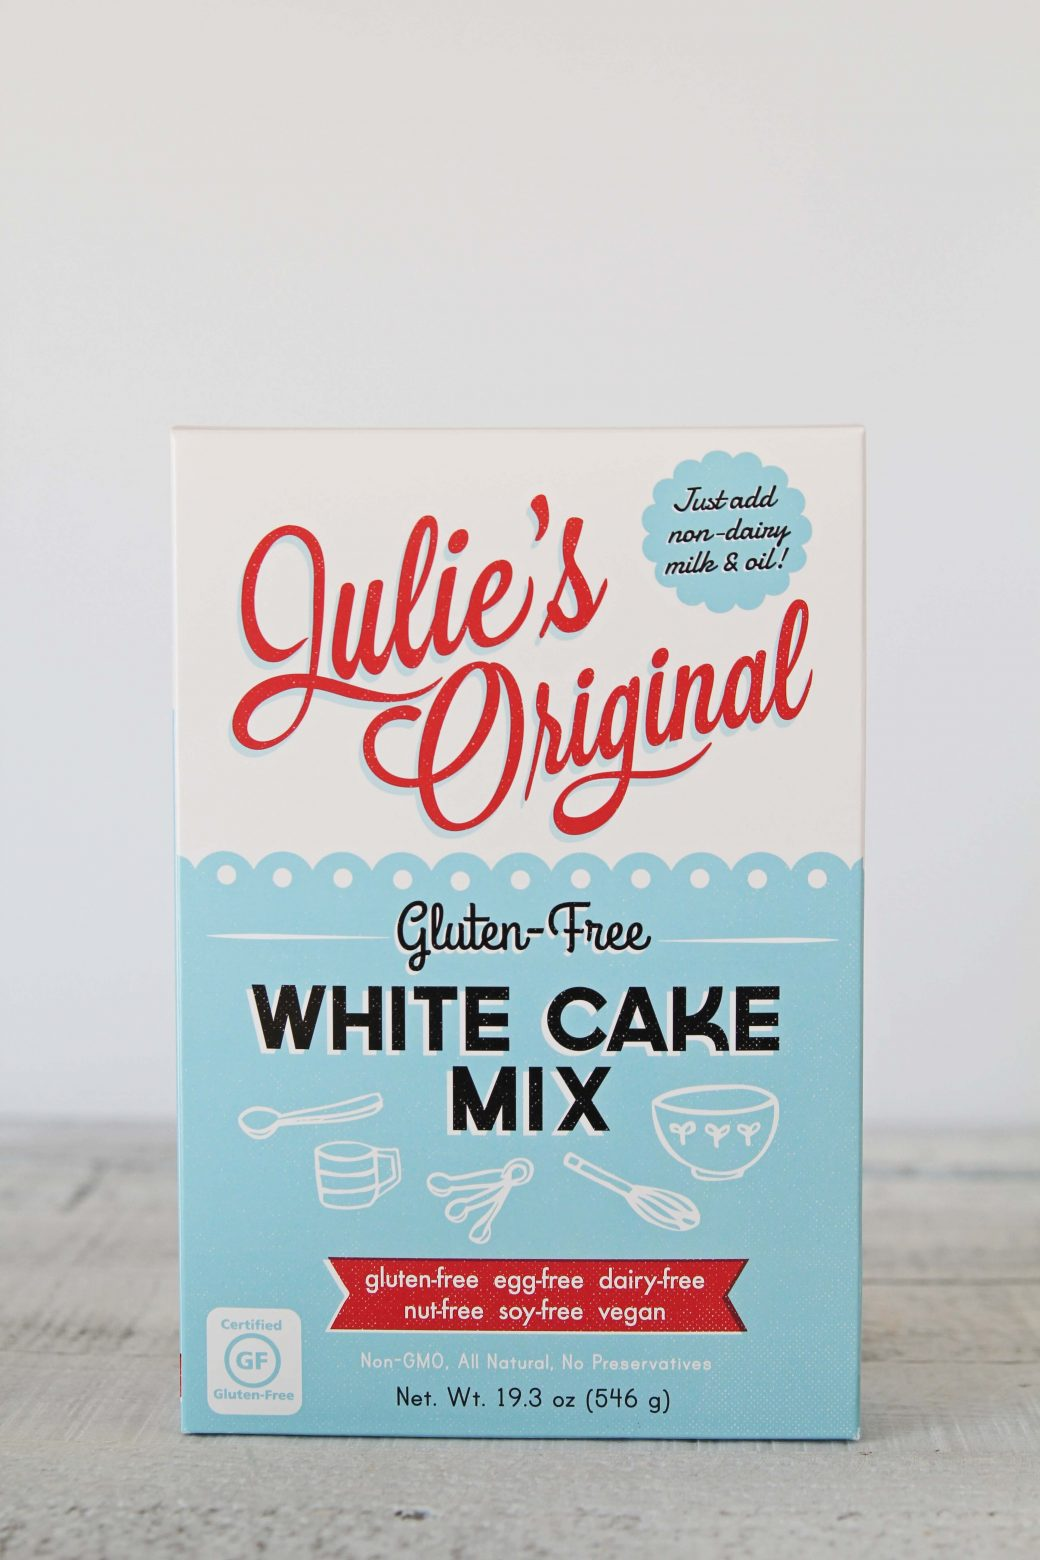 A photo of the Julie's Original Gluten-Free + Vegan White Cake Mix